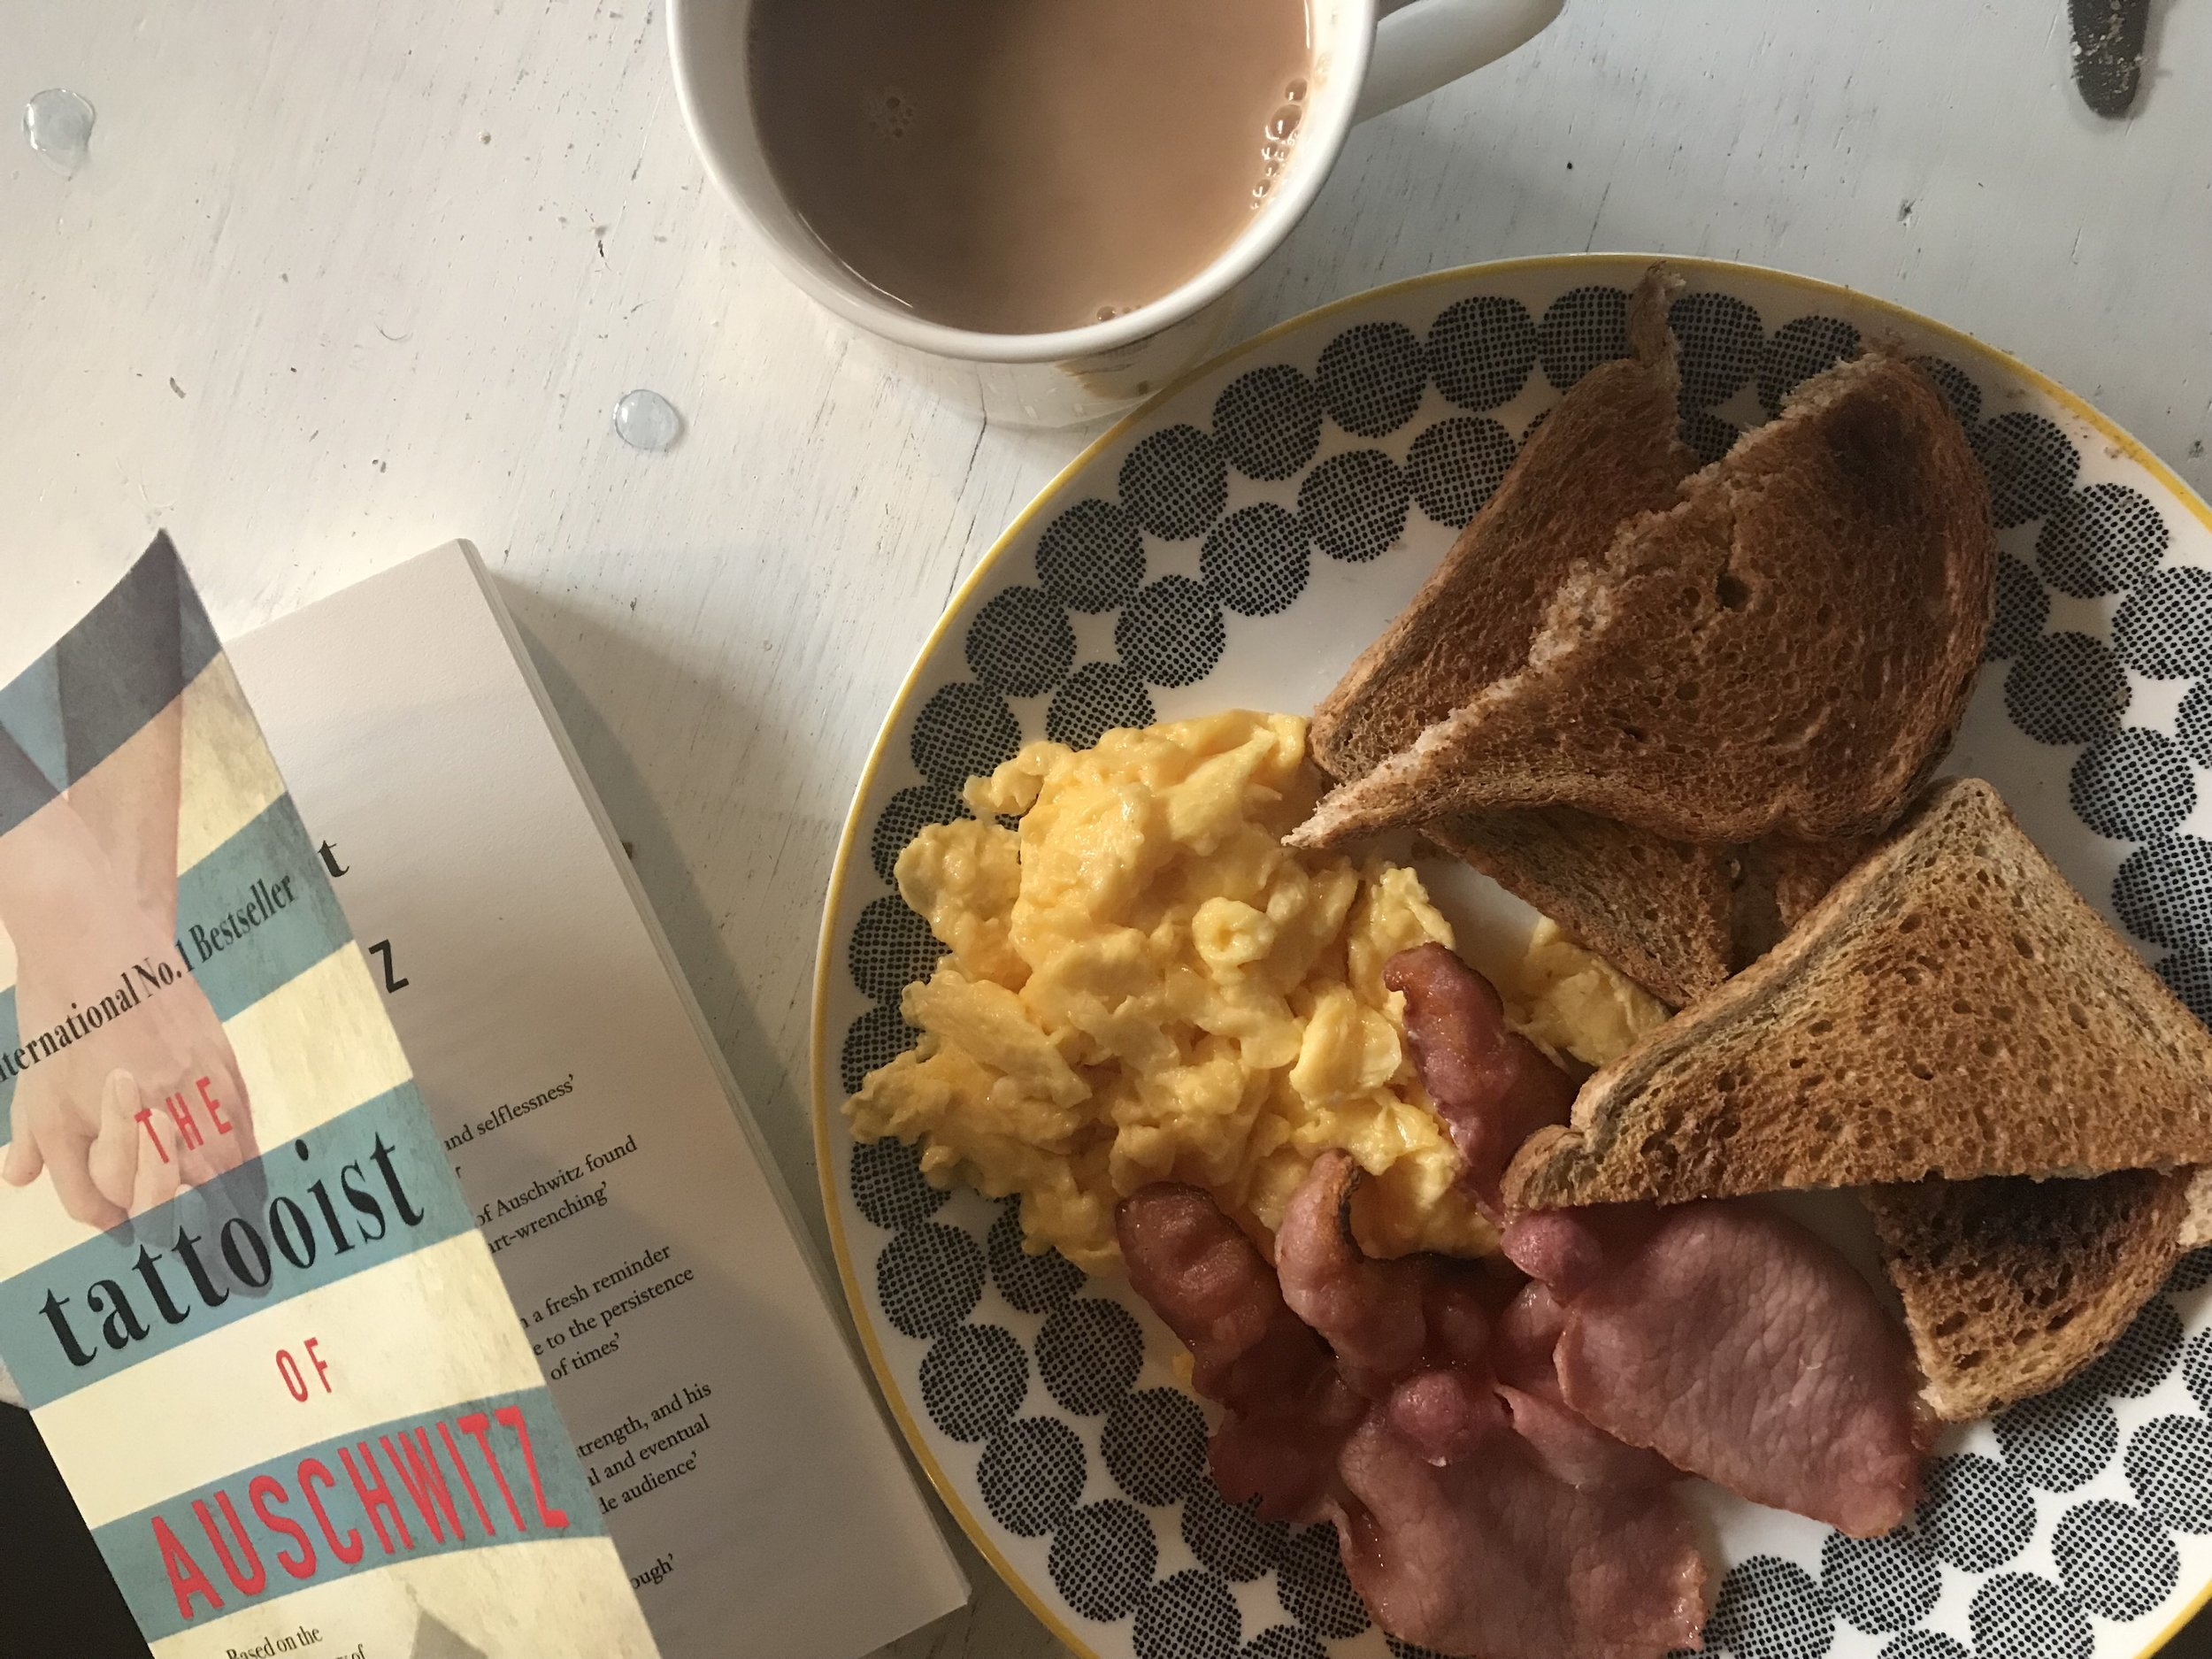 A book, breakfast and tea.